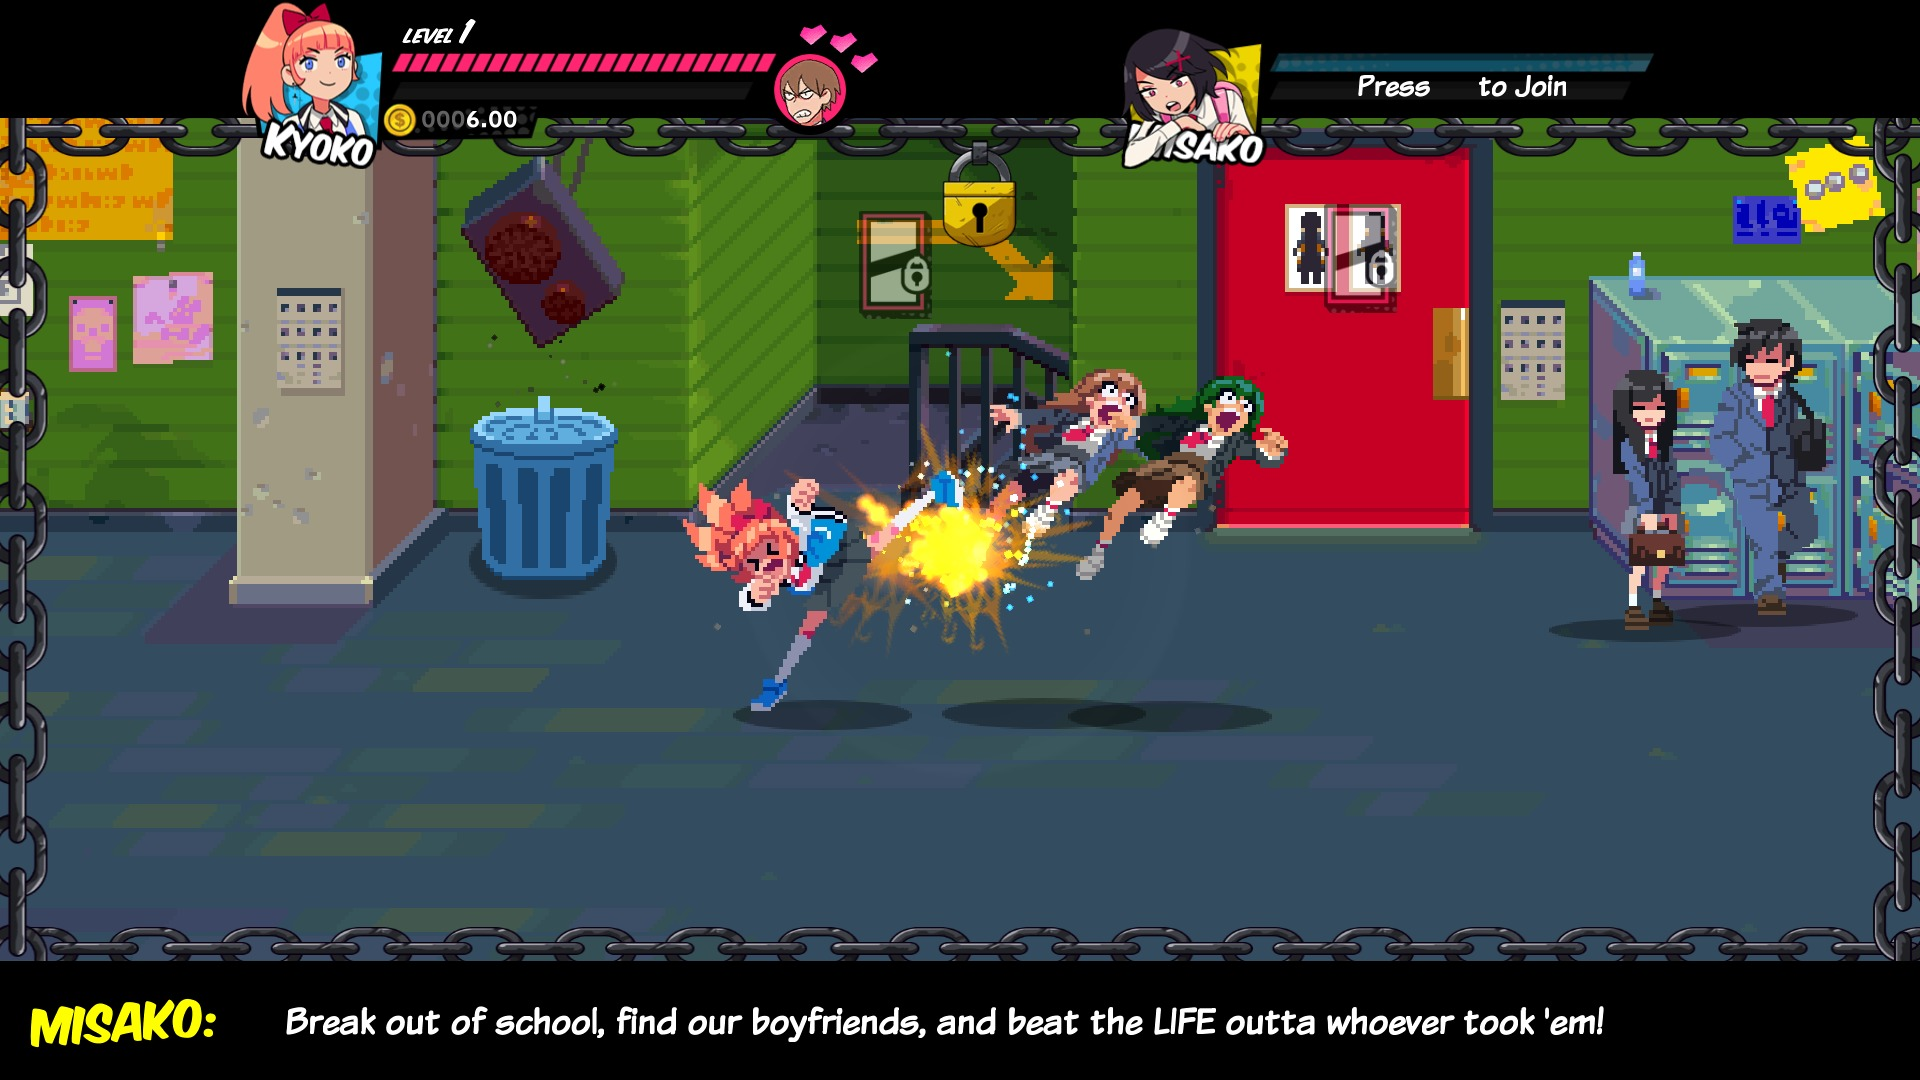 River City Girls Beats Down The Doors In Stylish, Old-Cool Glory